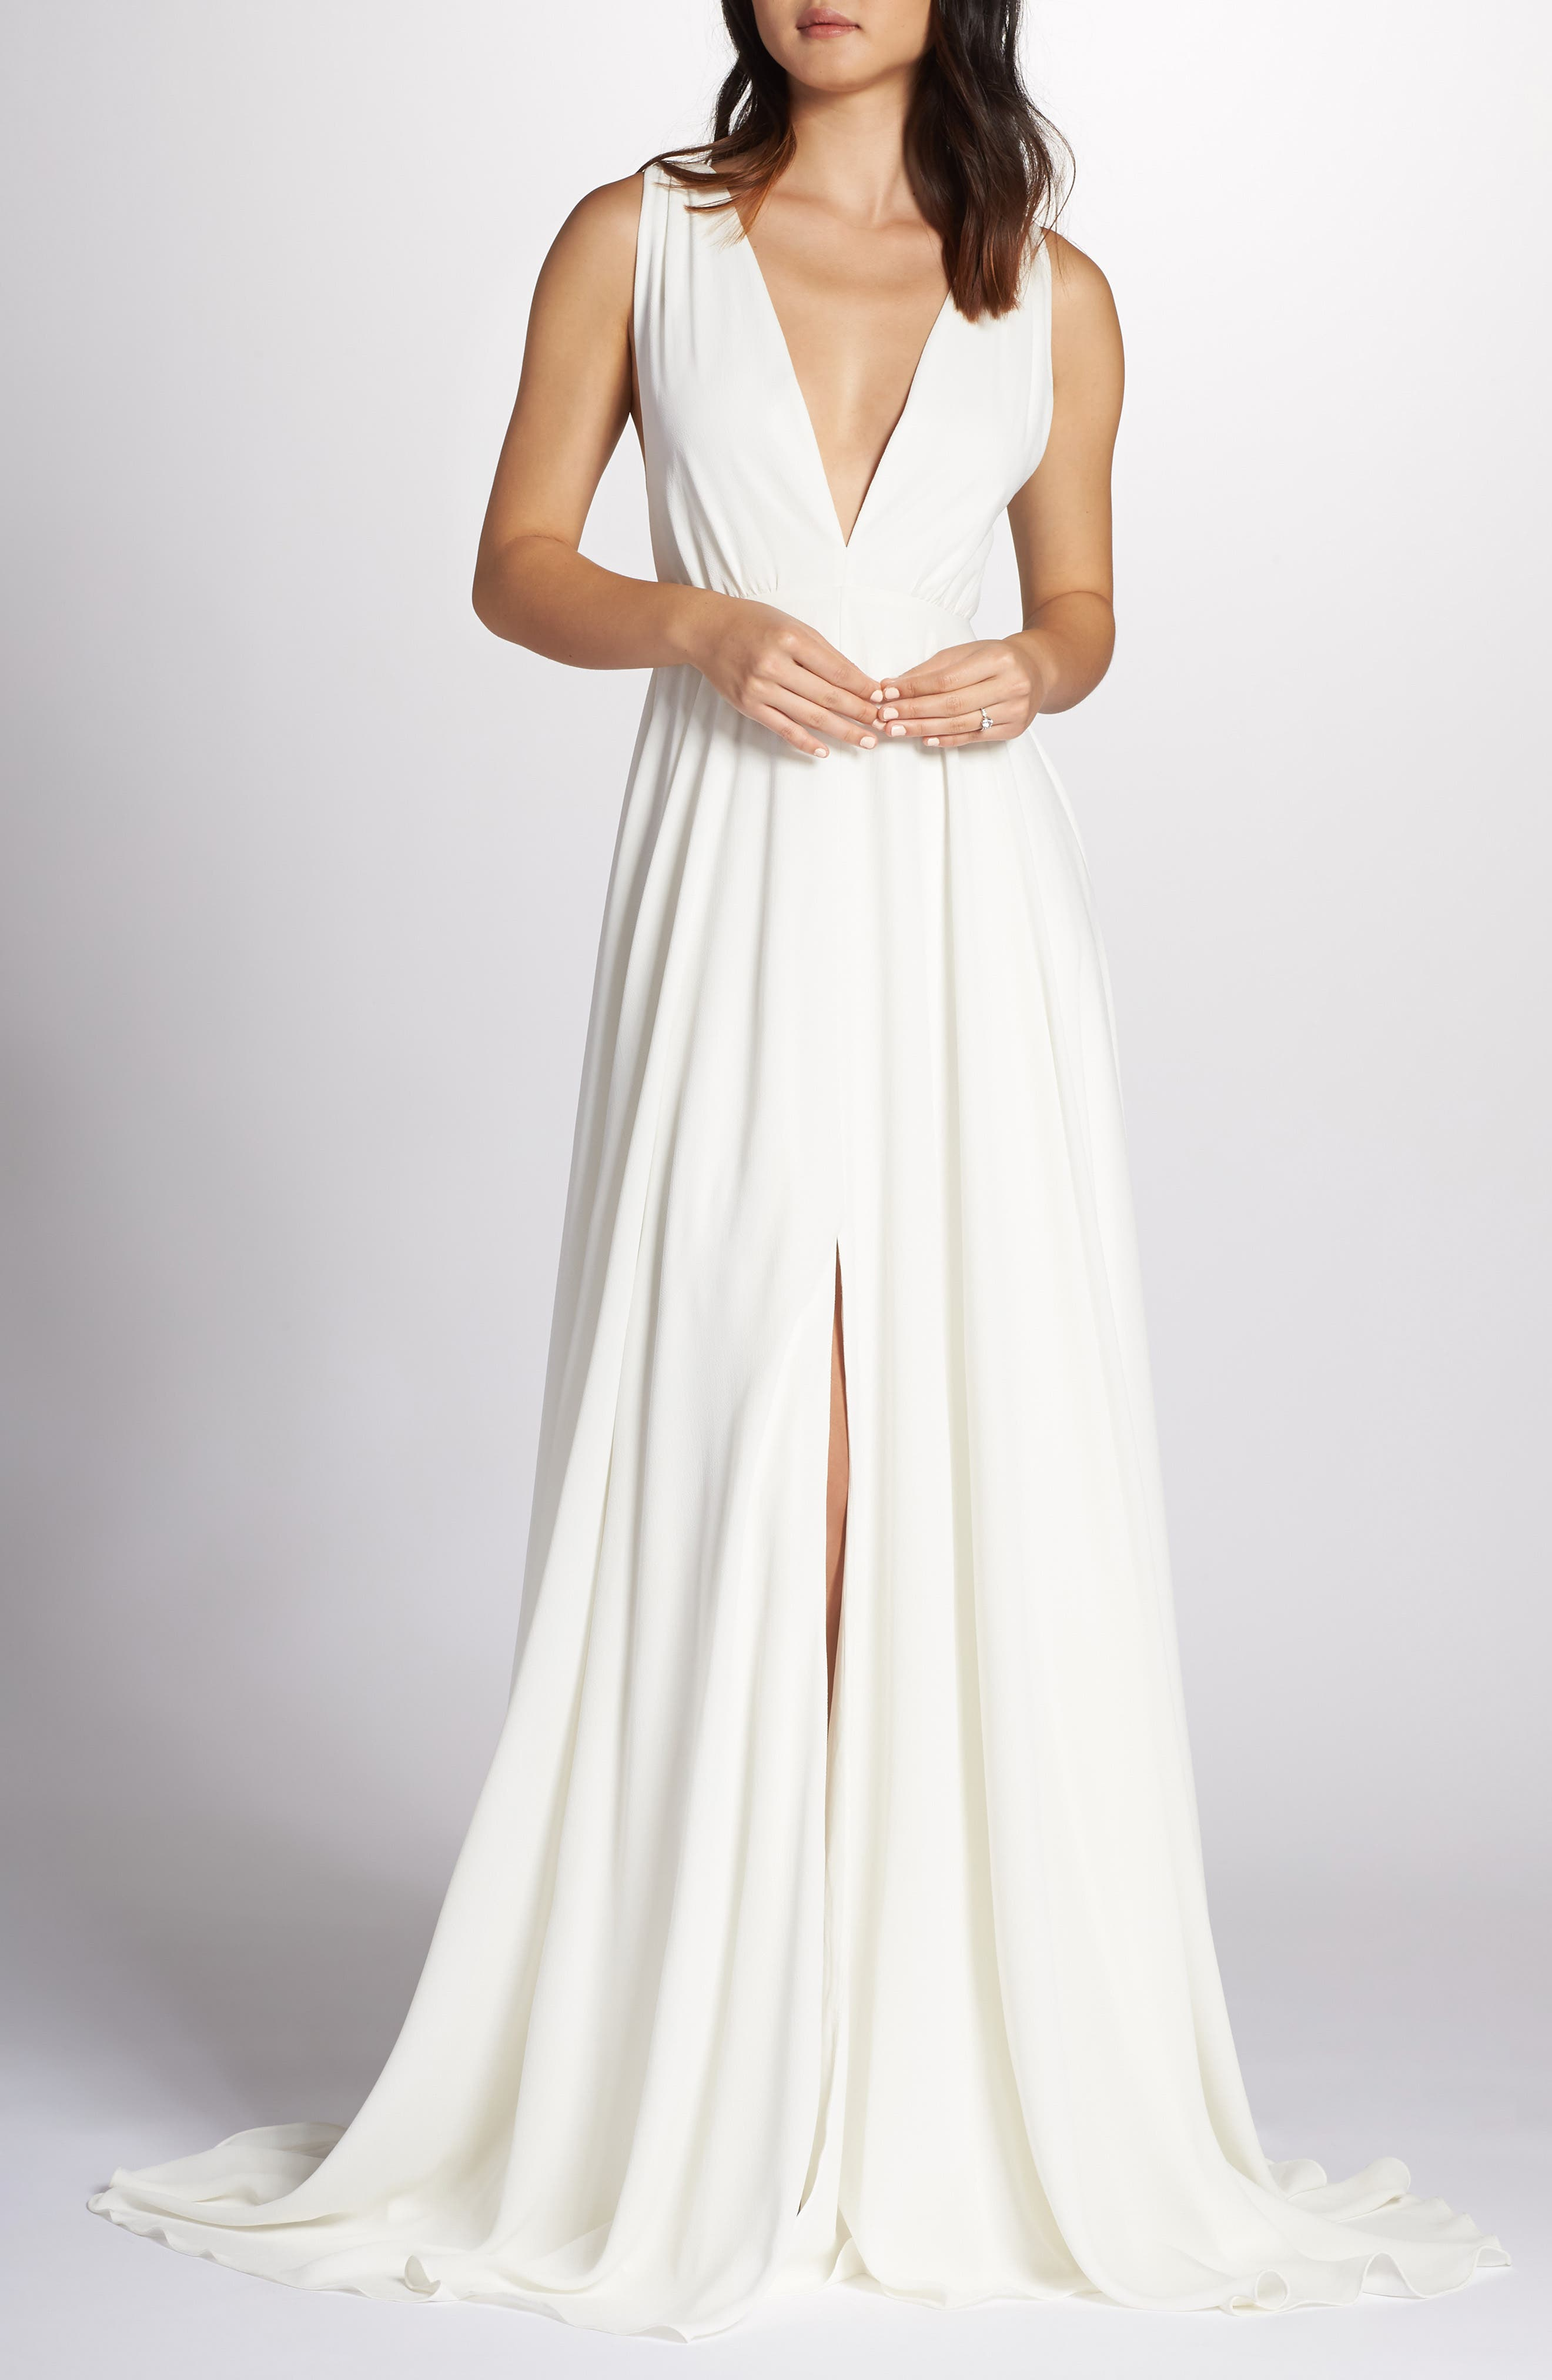 JOANNA AUGUST Nico Plunging A-Line Gown in White